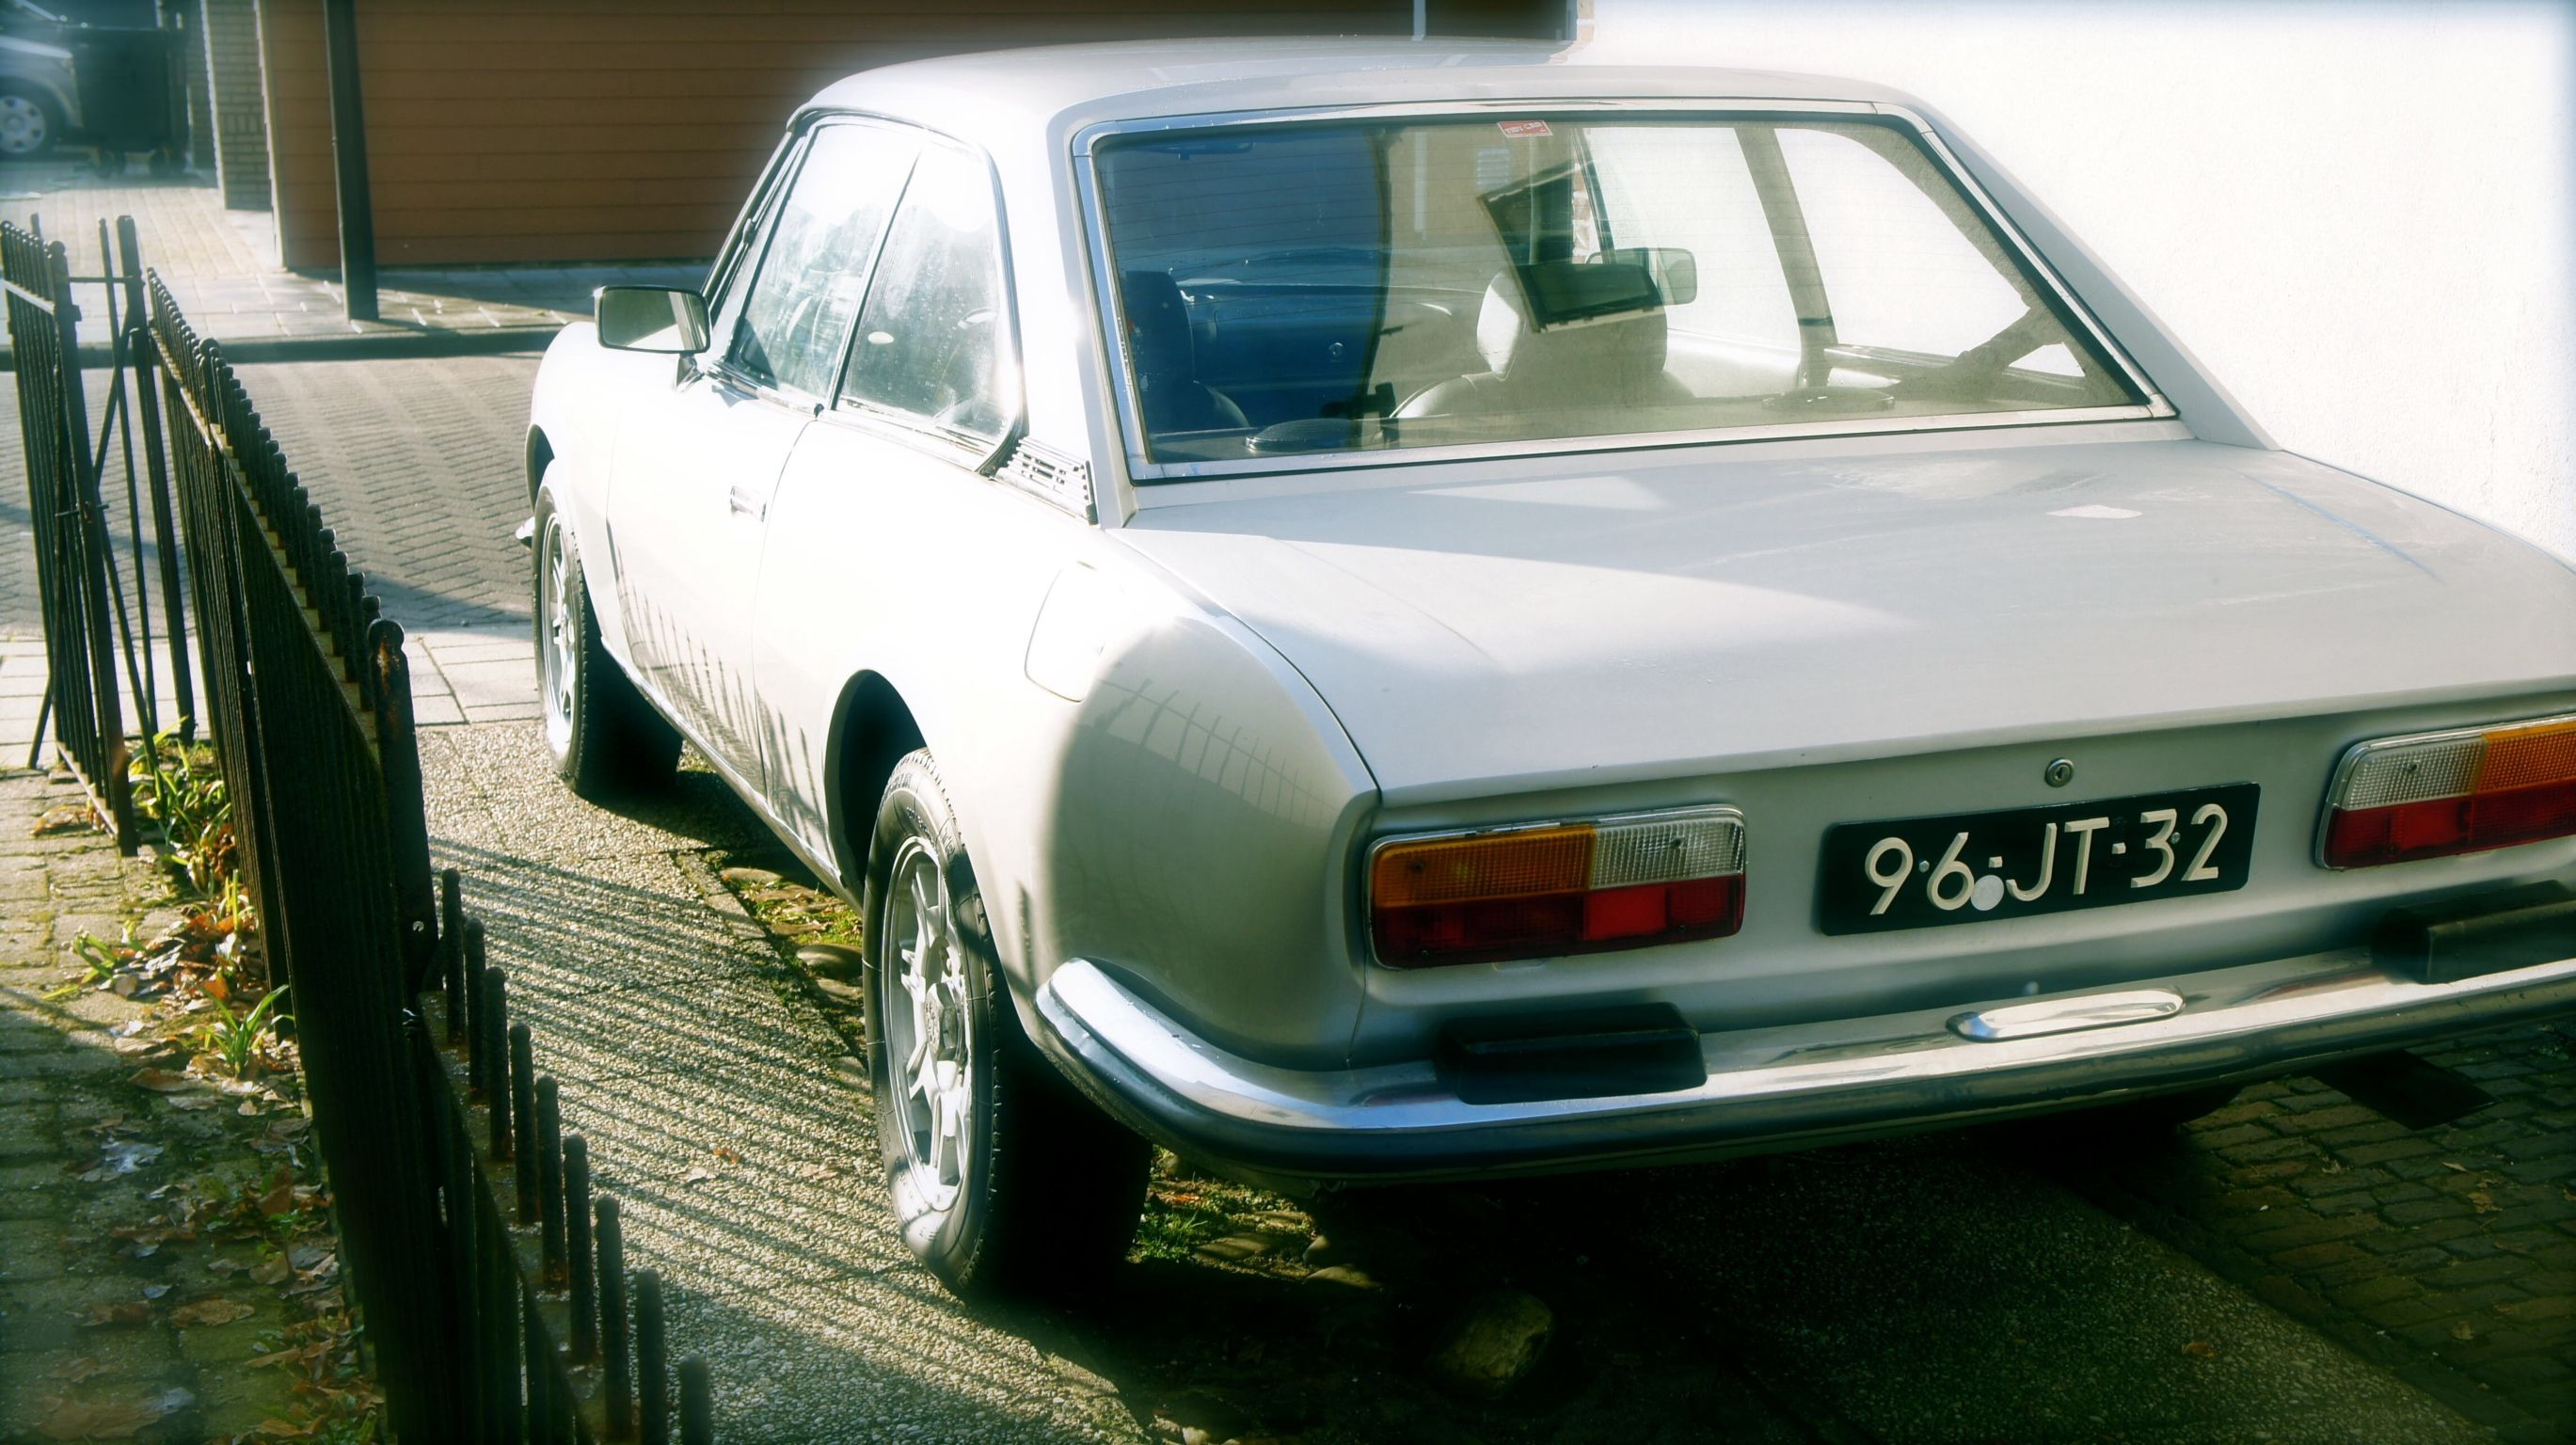 1976 Peugeot 504 Coupé. Oldtimer. Sold. (With images